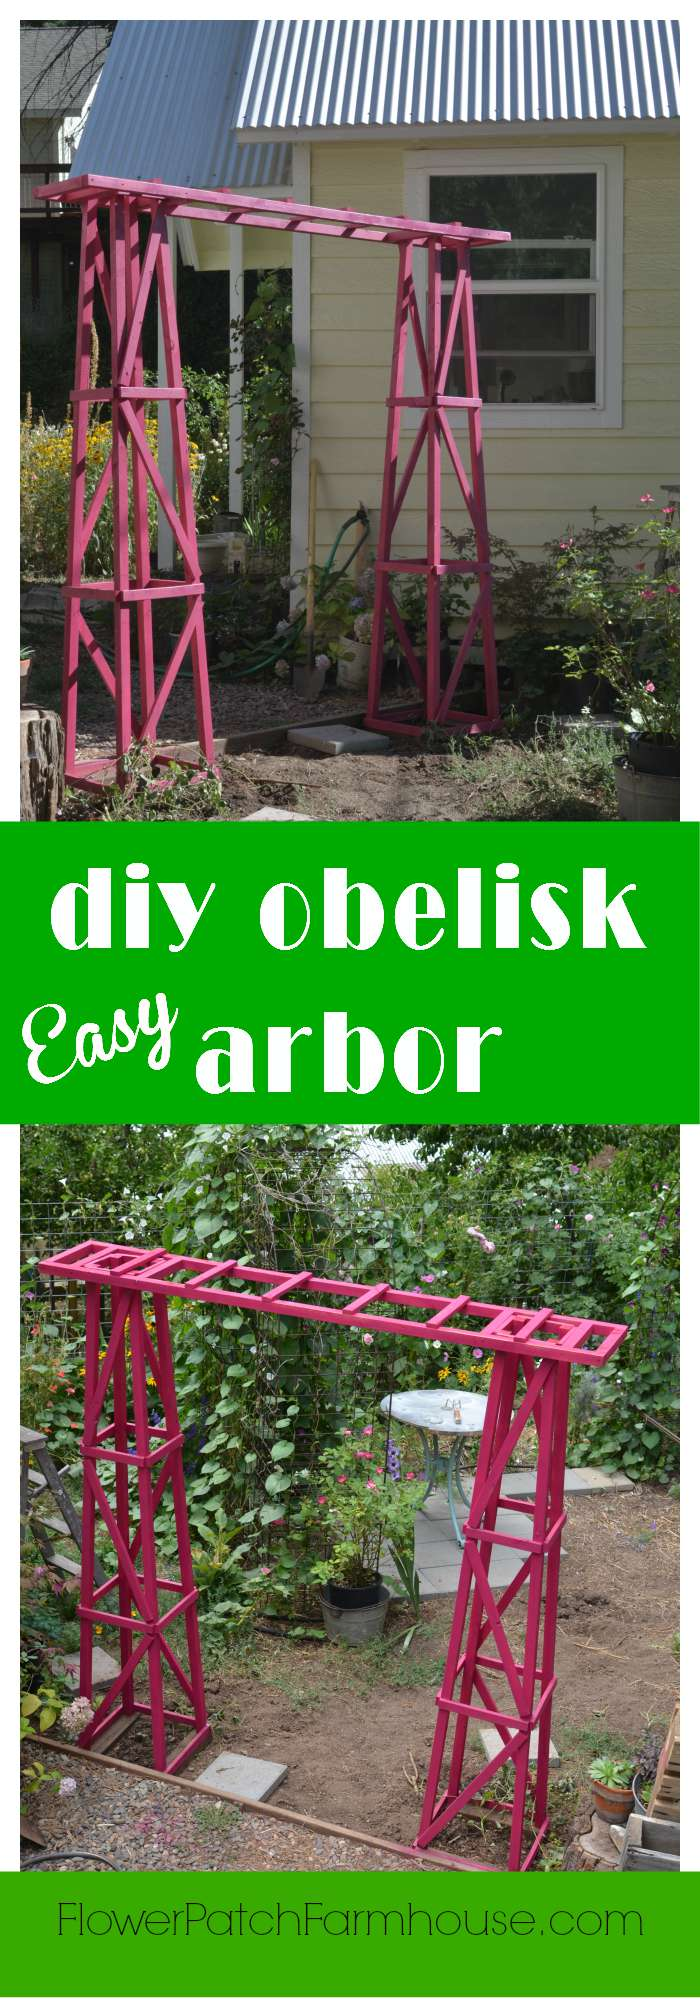 DIY Arbor created from our DIY obelisks!  This is so easy and fun.  What makes it even better is it is portable, no need to sink it into the ground.  (in windy locales you would wish to secure it)